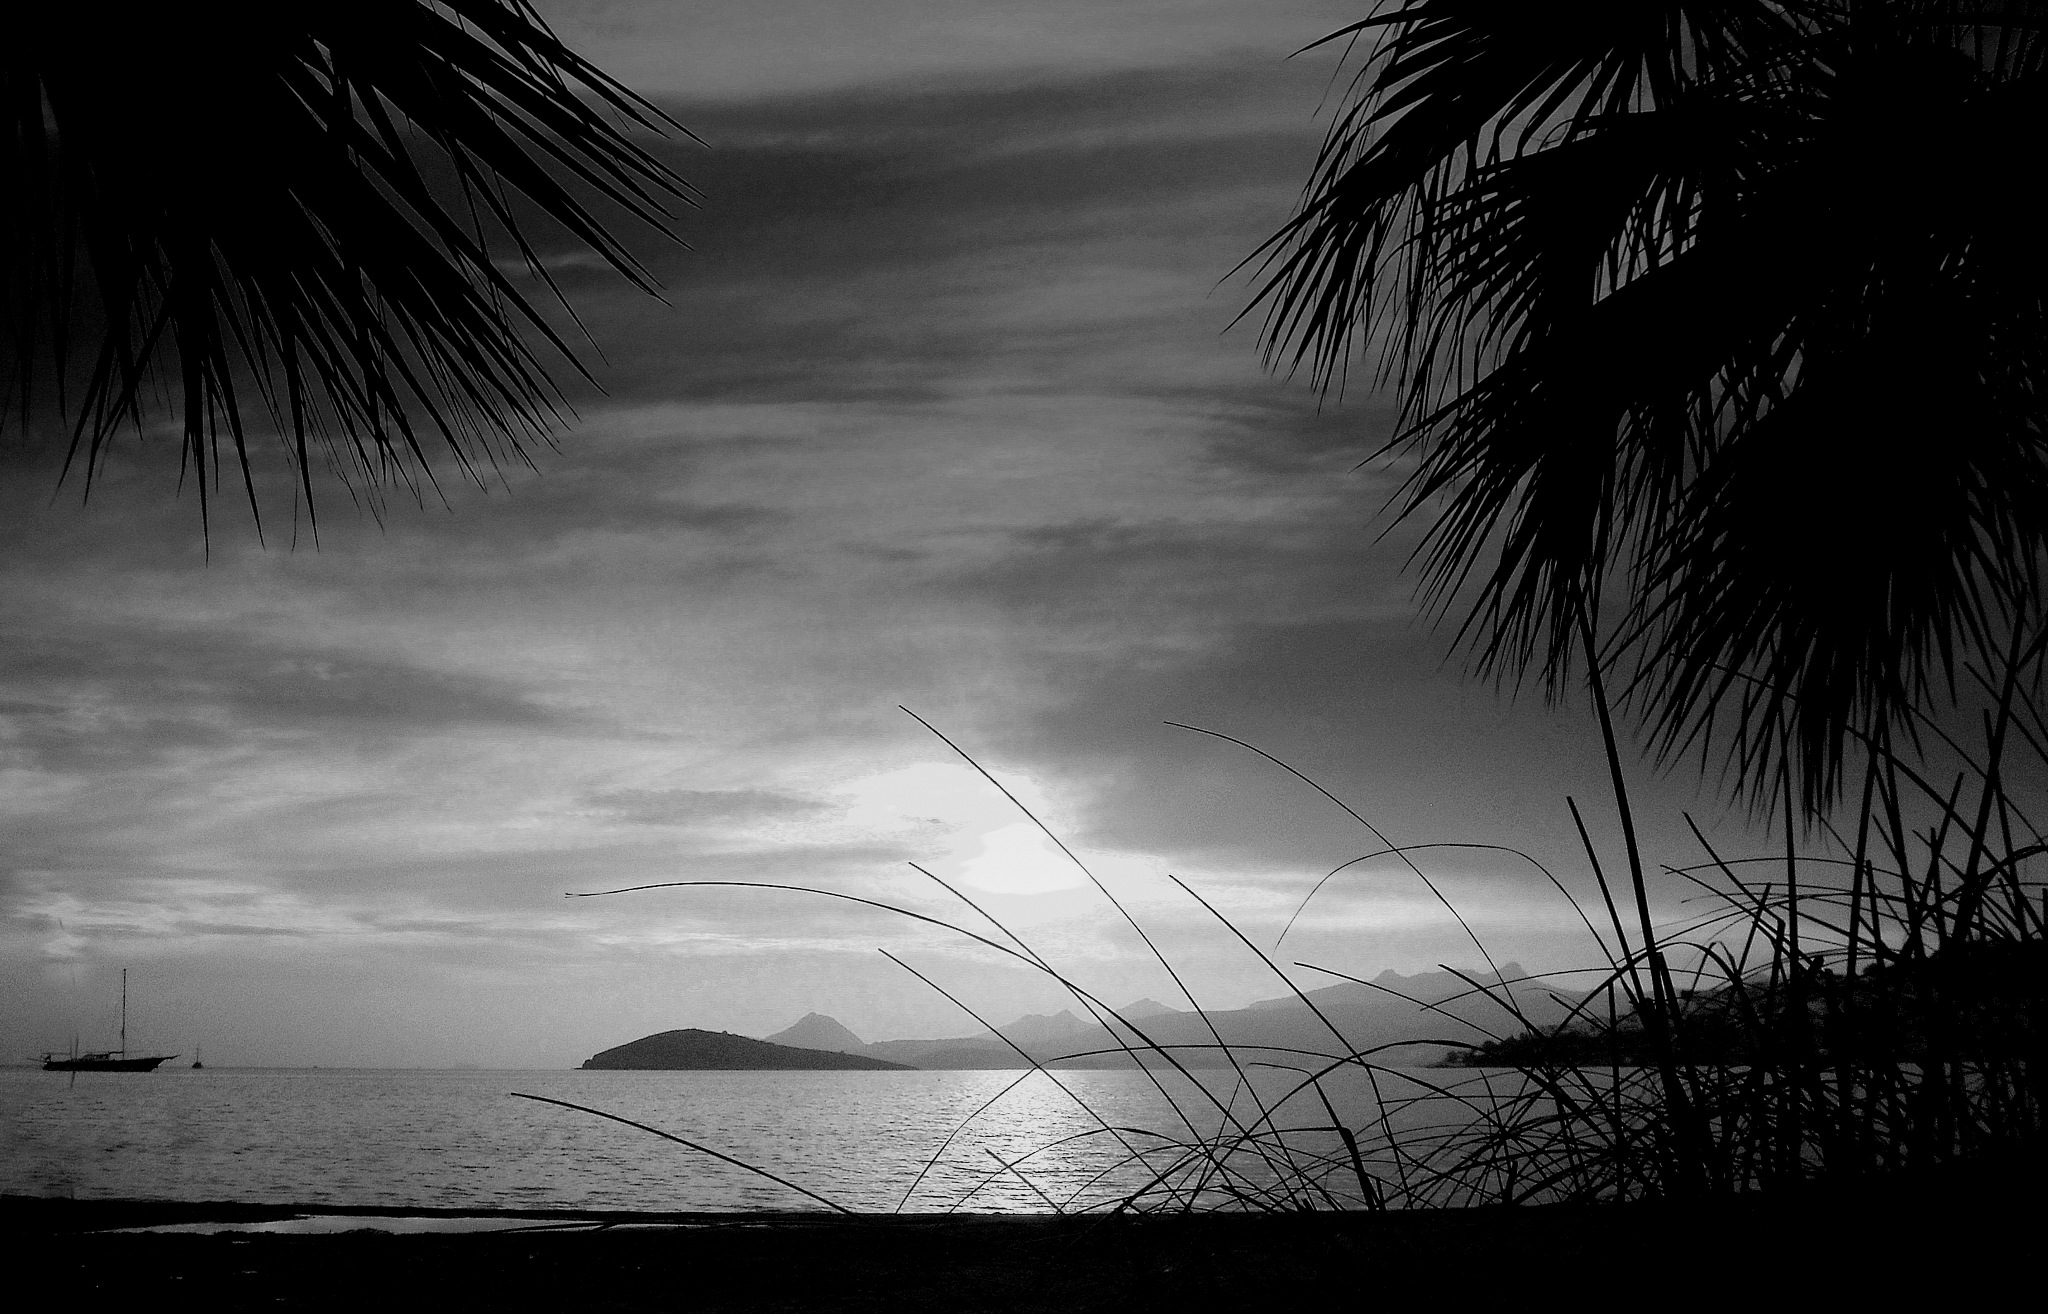 SPECIAL BITEZ SUNSET, B&W by Akin Saner